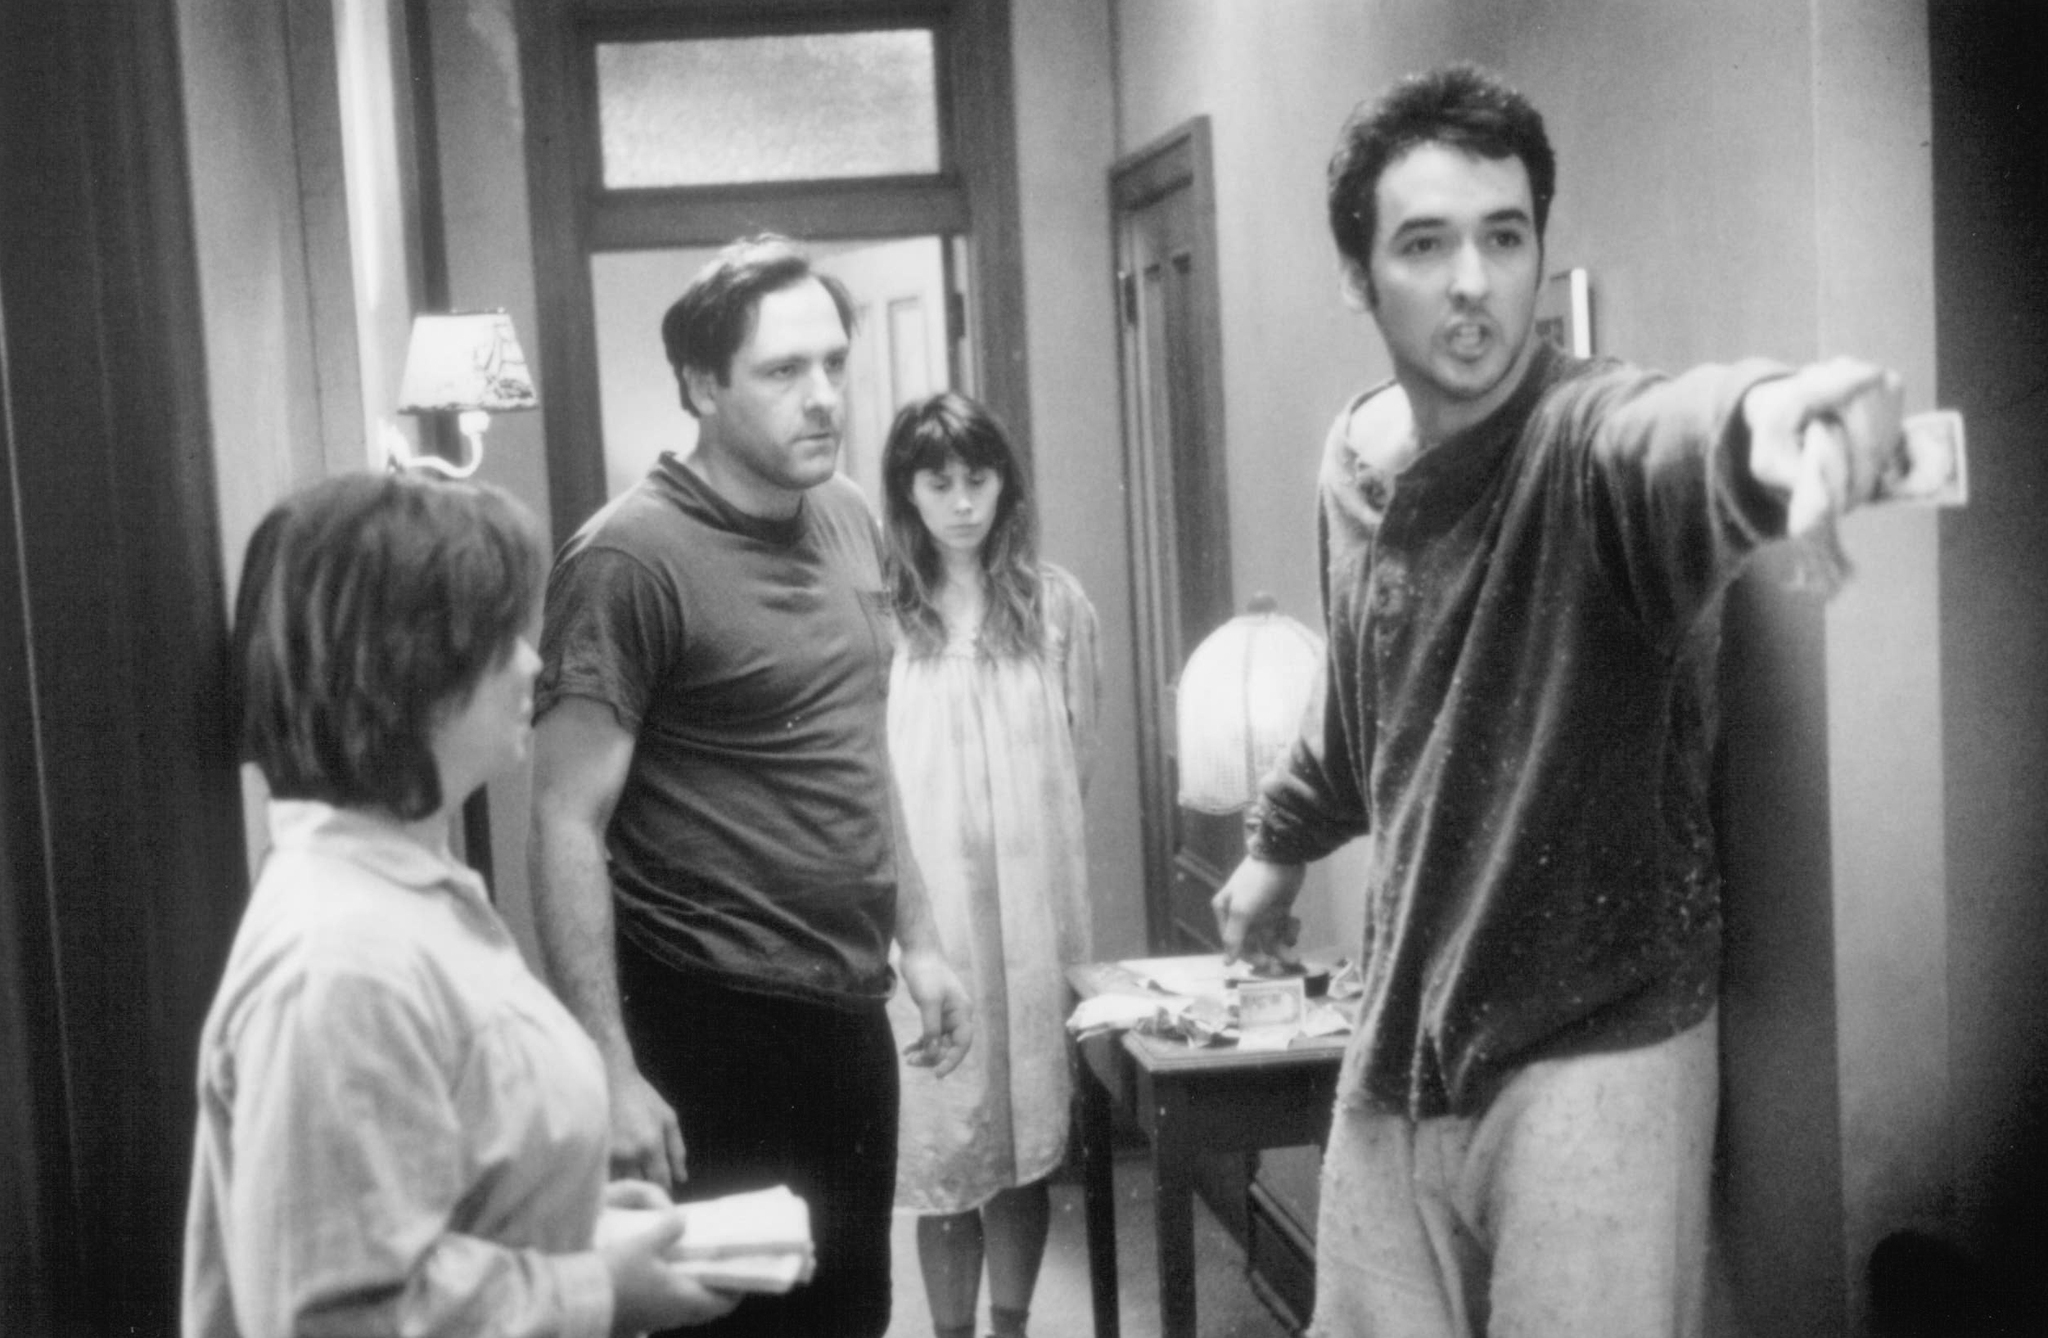 John Cusack and James Gandolfini in Money for Nothing (1993)